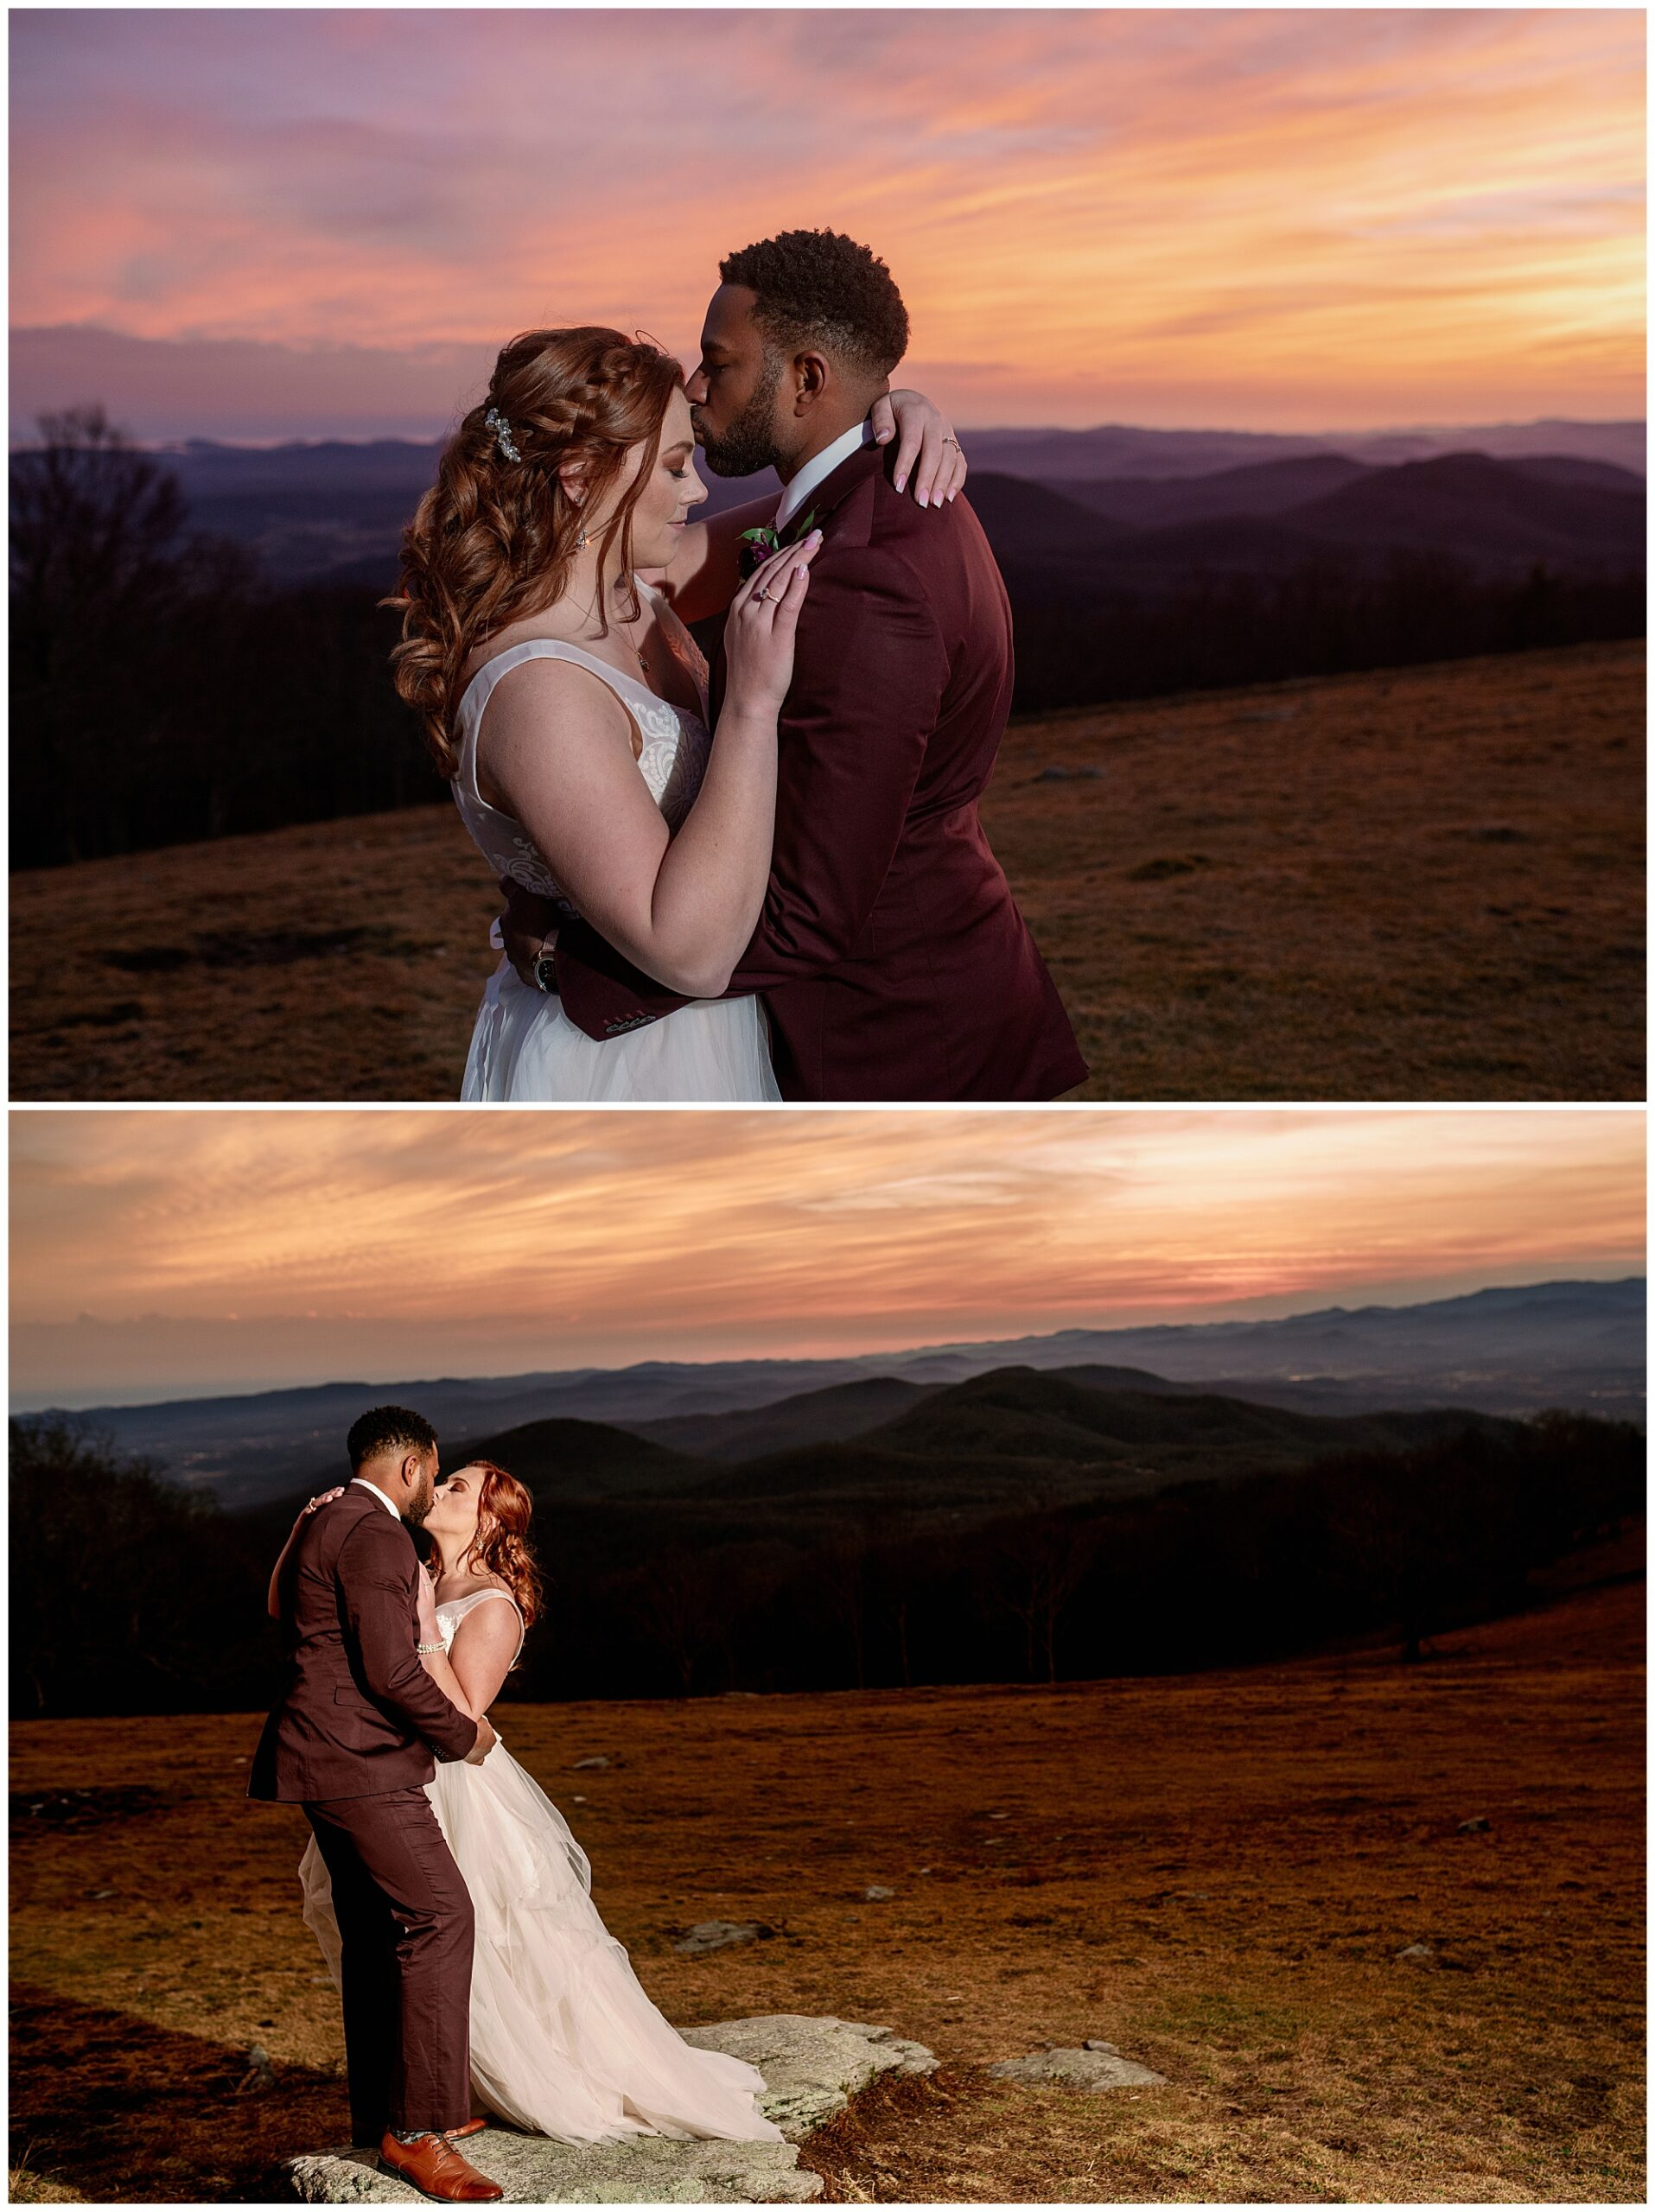 sunset photos with flash of the groom and bride kissing